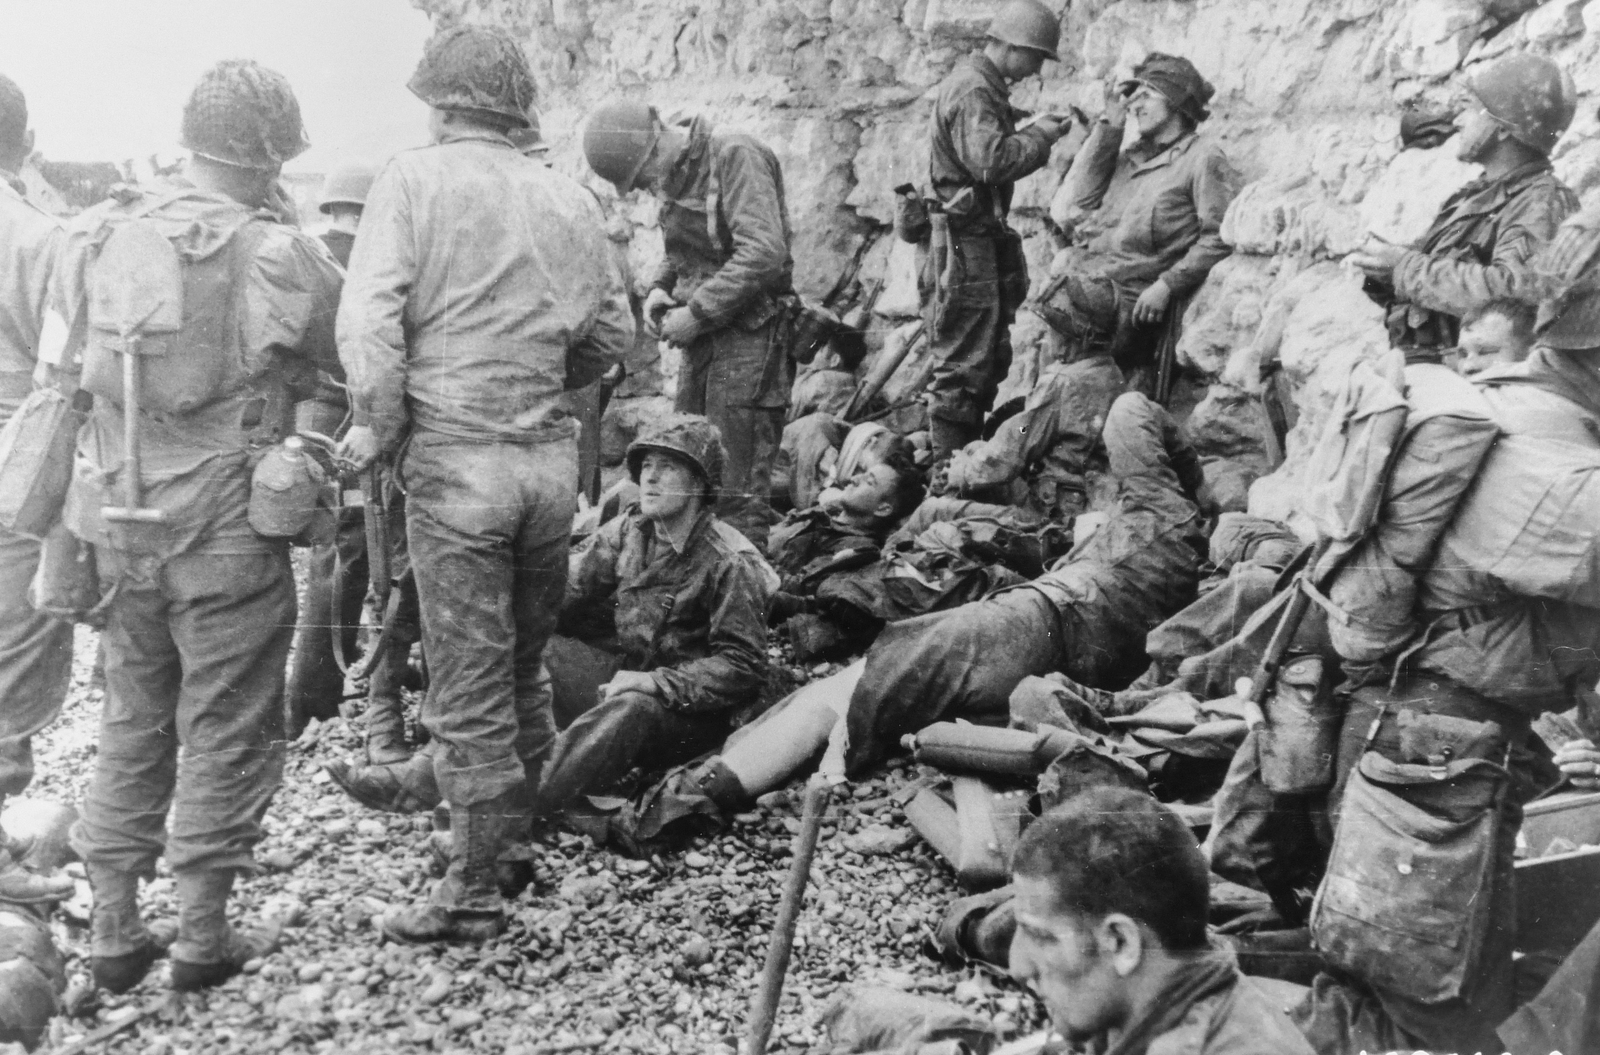 Photograph of a Large Group of American Assault Troops